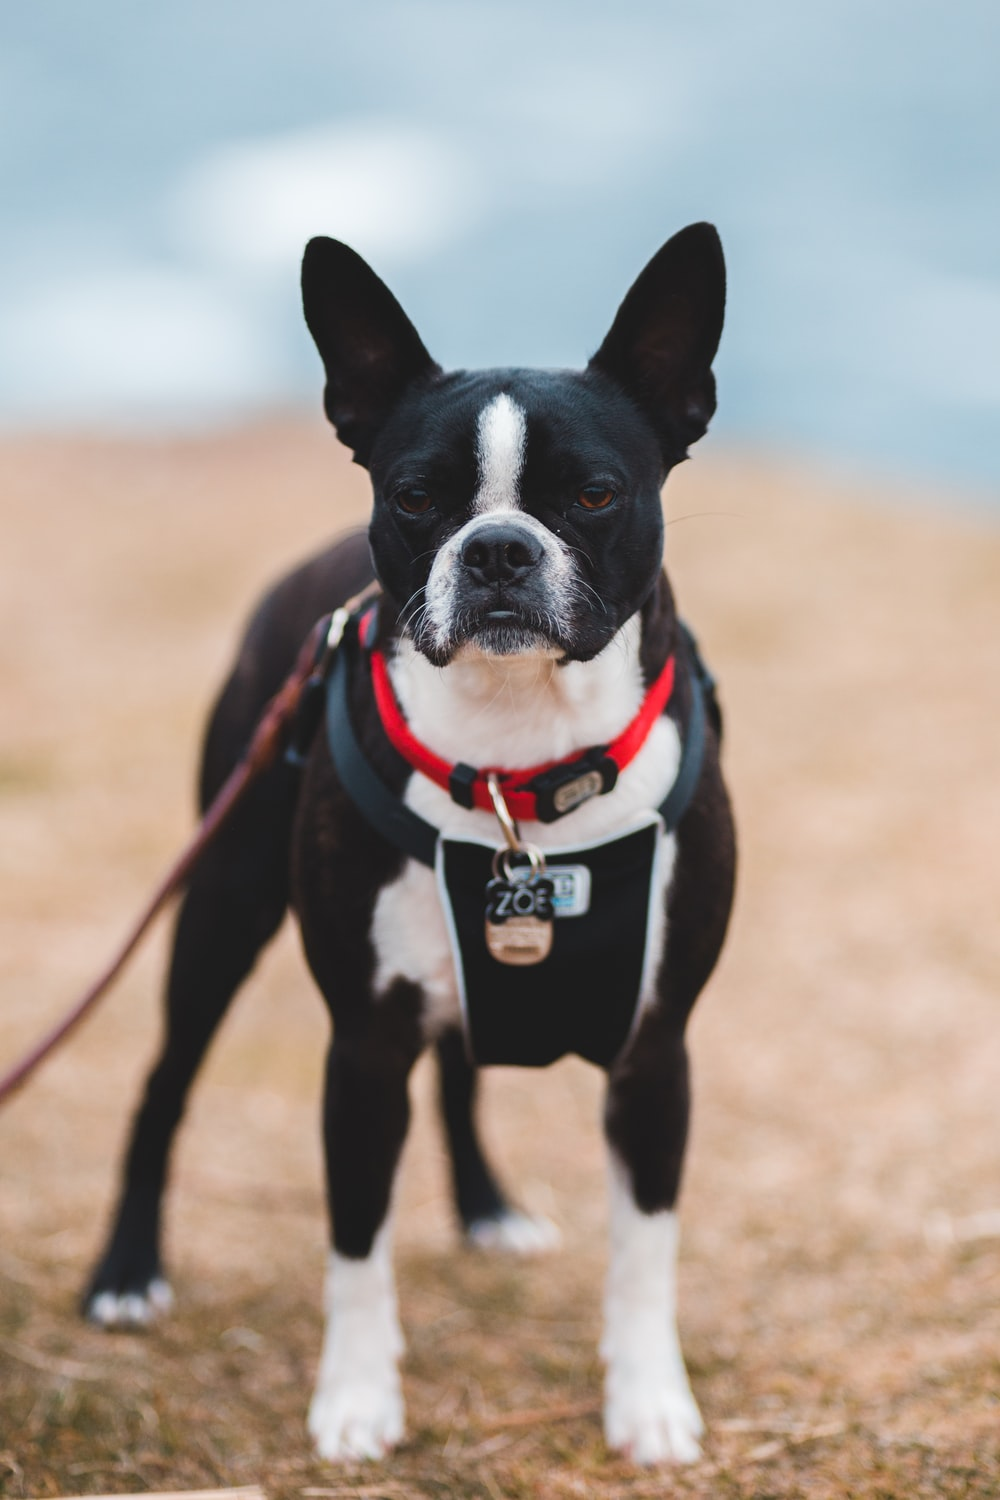 black and white short coated dog standing on ground